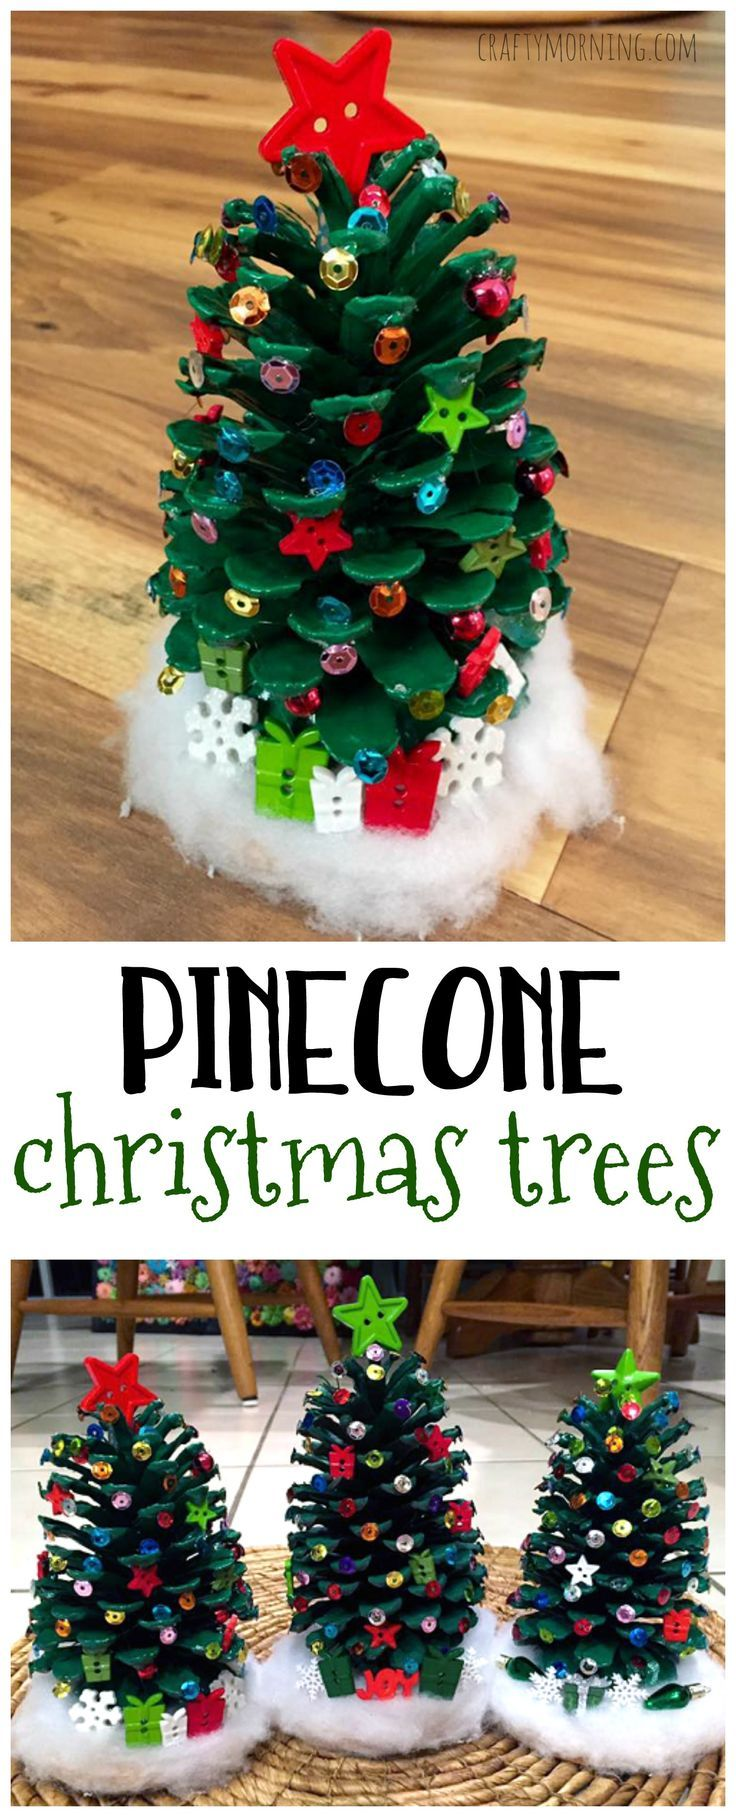 25 best ideas about kids christmas trees on pinterest for Pine cone christmas tree craft